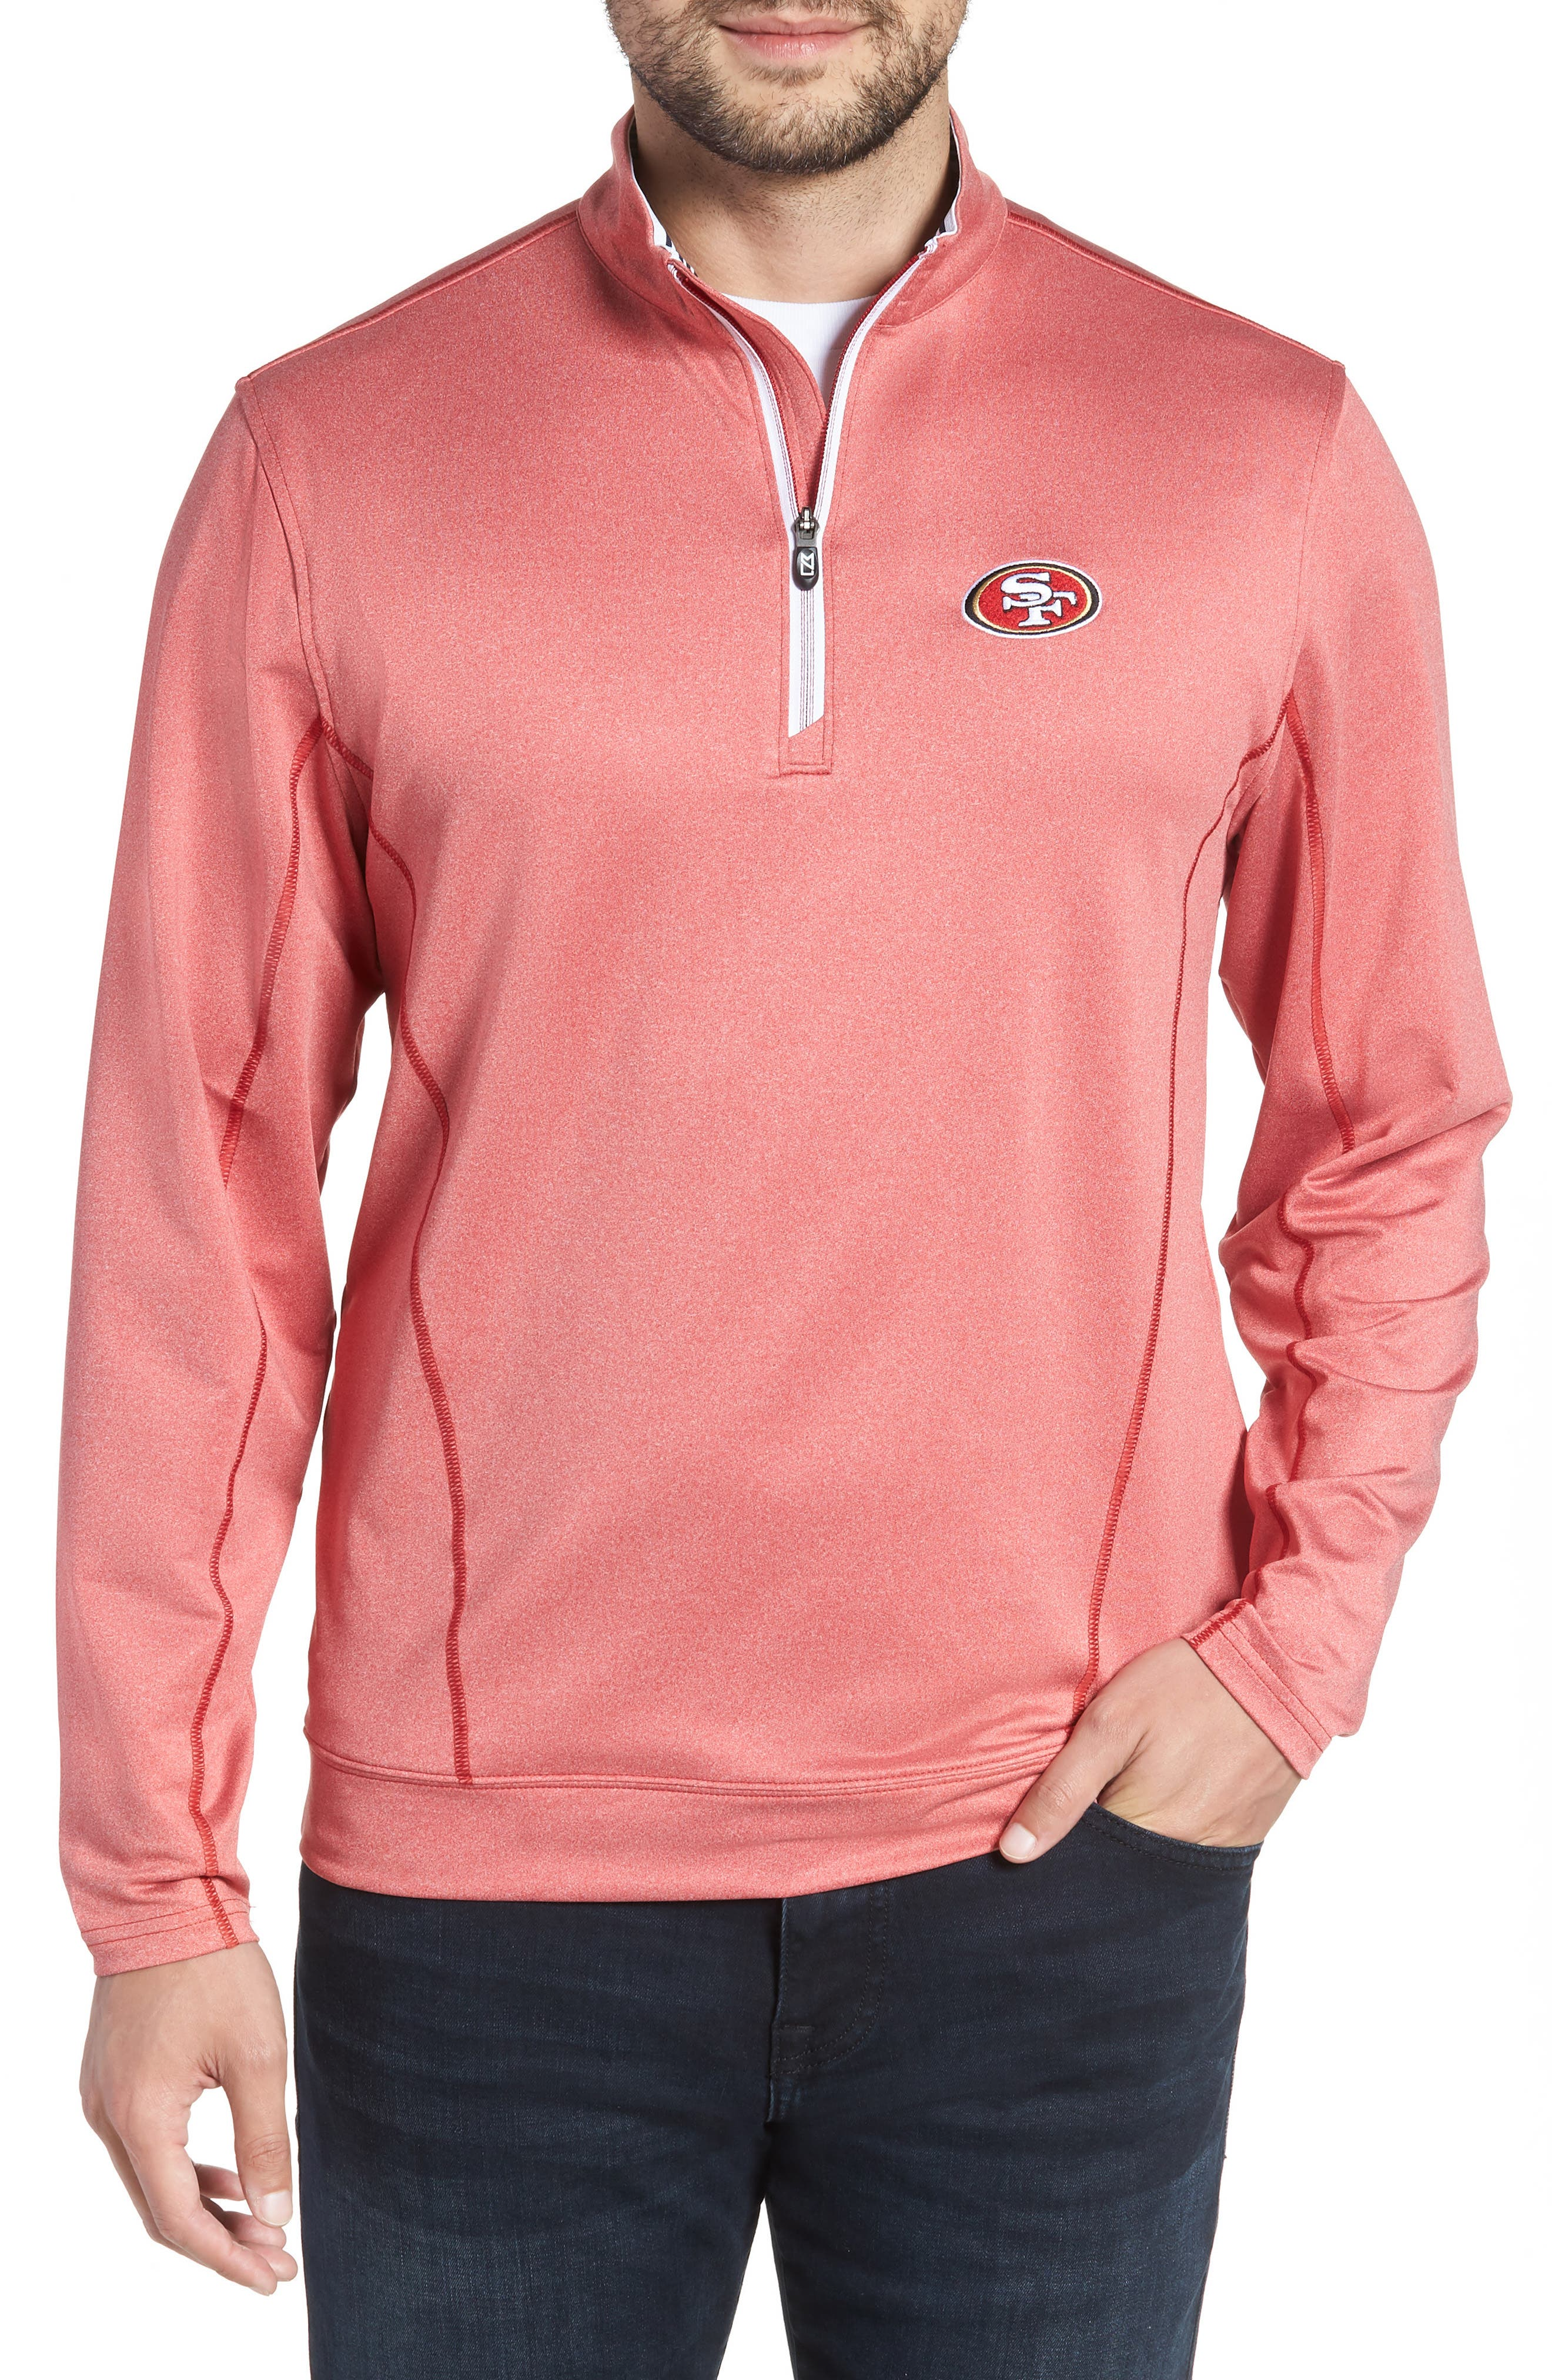 Endurance San Francisco 49s Regular Fit Pullover,                             Main thumbnail 1, color,                             CARDINAL RED HEATHER